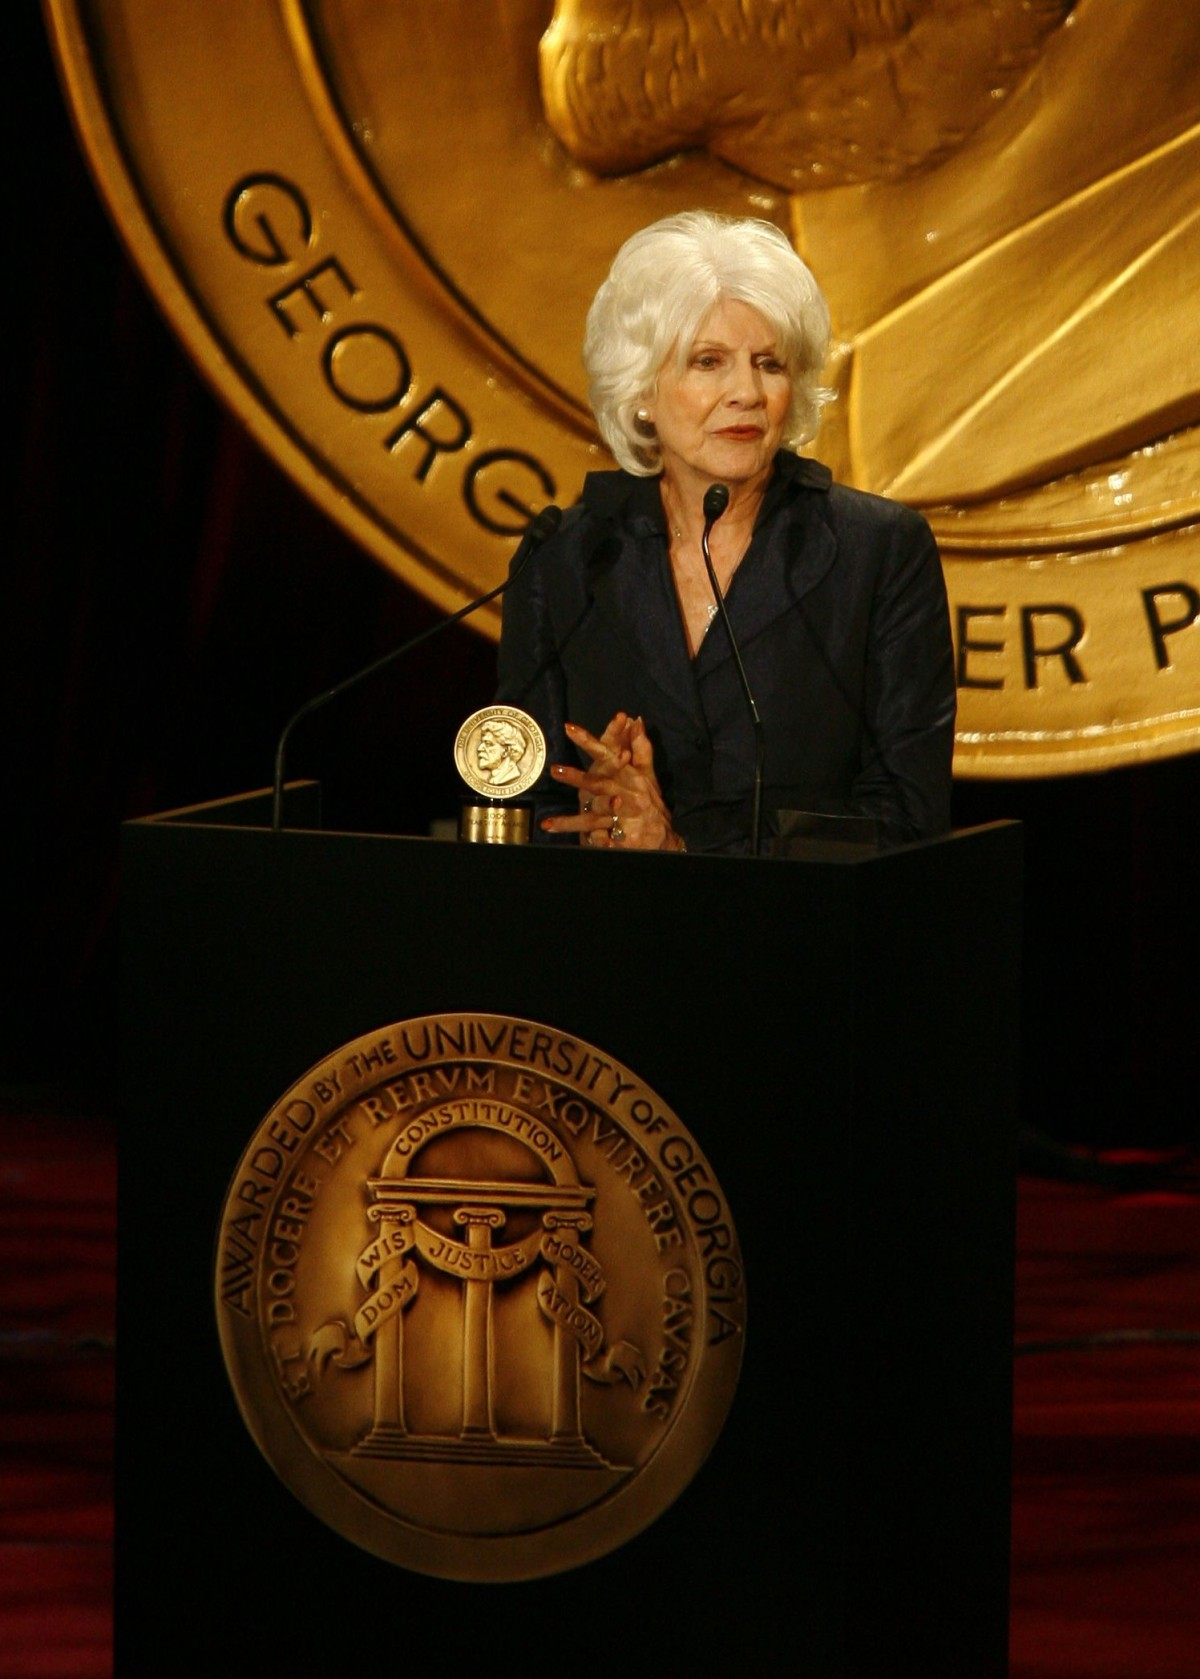 What we can learn from Diane Rehm